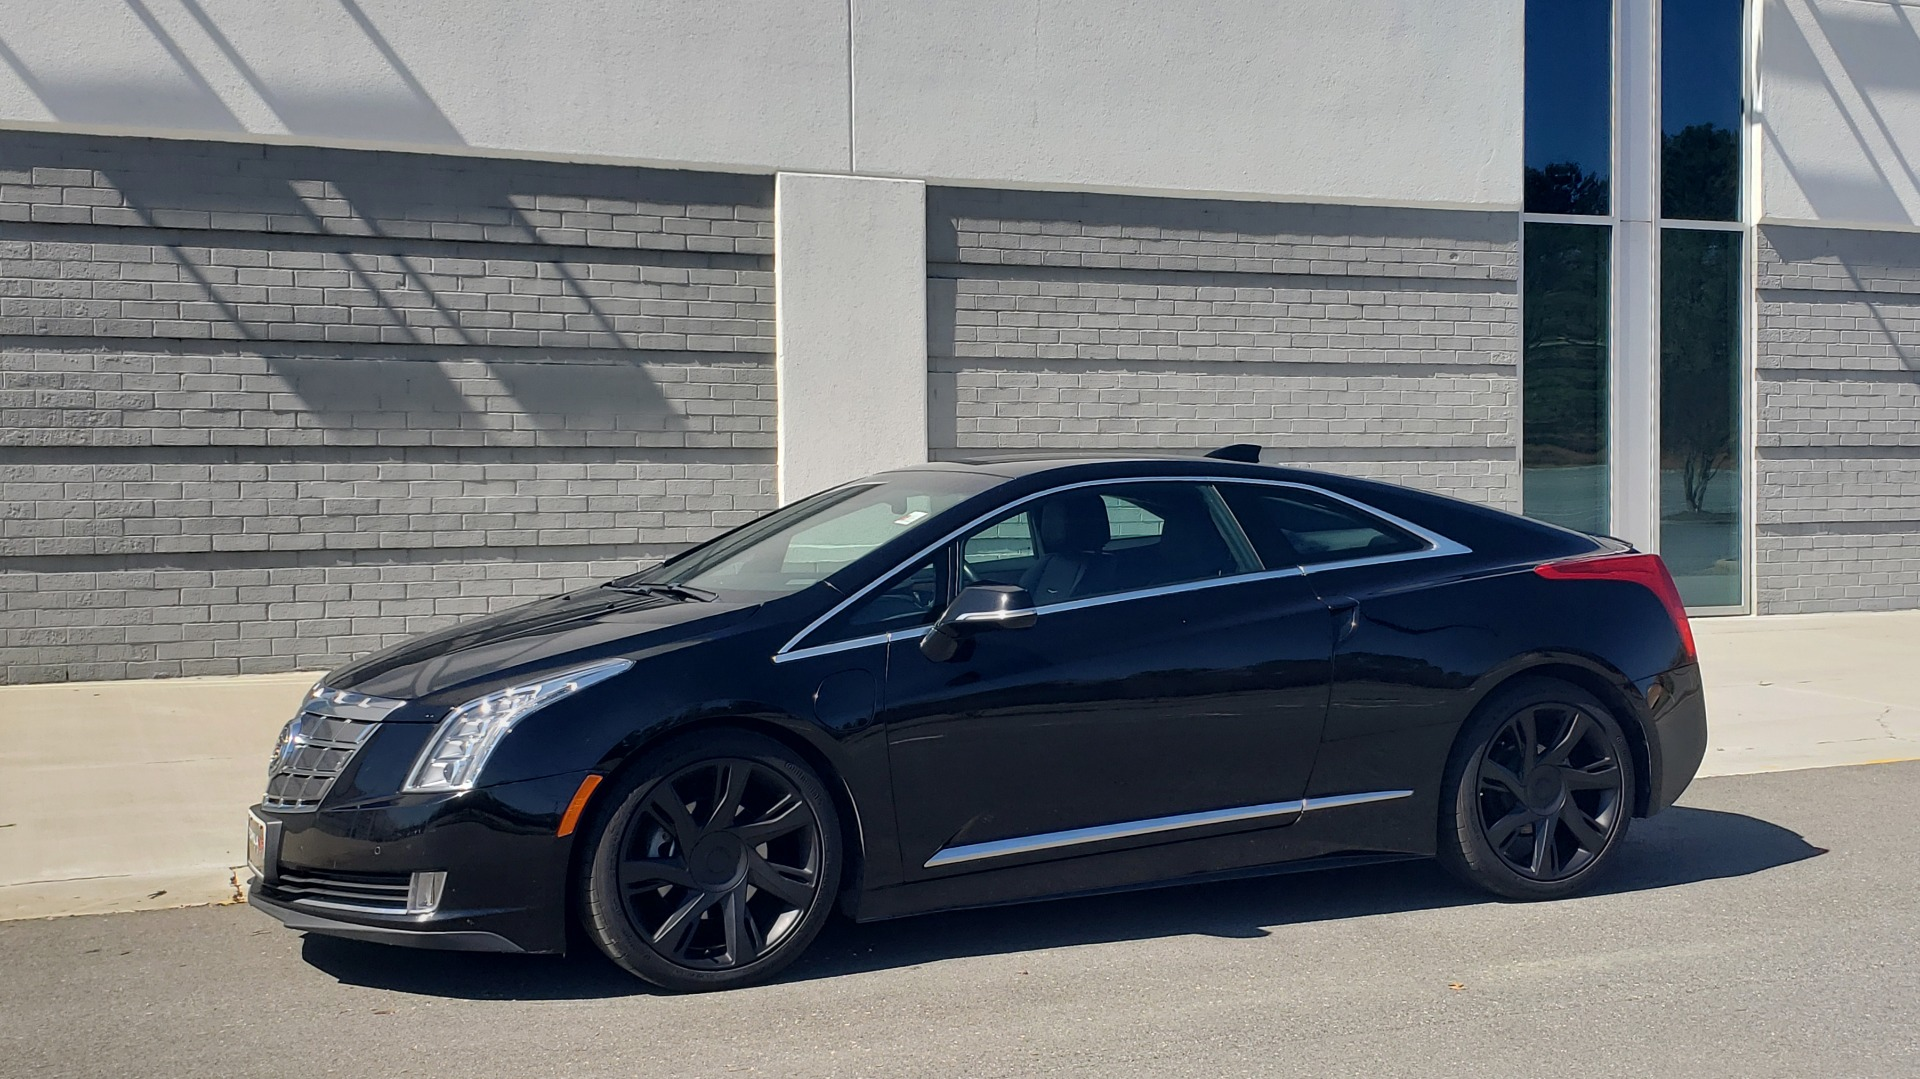 Used 2014 Cadillac ELR 2DR COUPE / HYBRID / NAV / BOSE / HEATED SEATS / REARVIEW for sale $19,995 at Formula Imports in Charlotte NC 28227 2